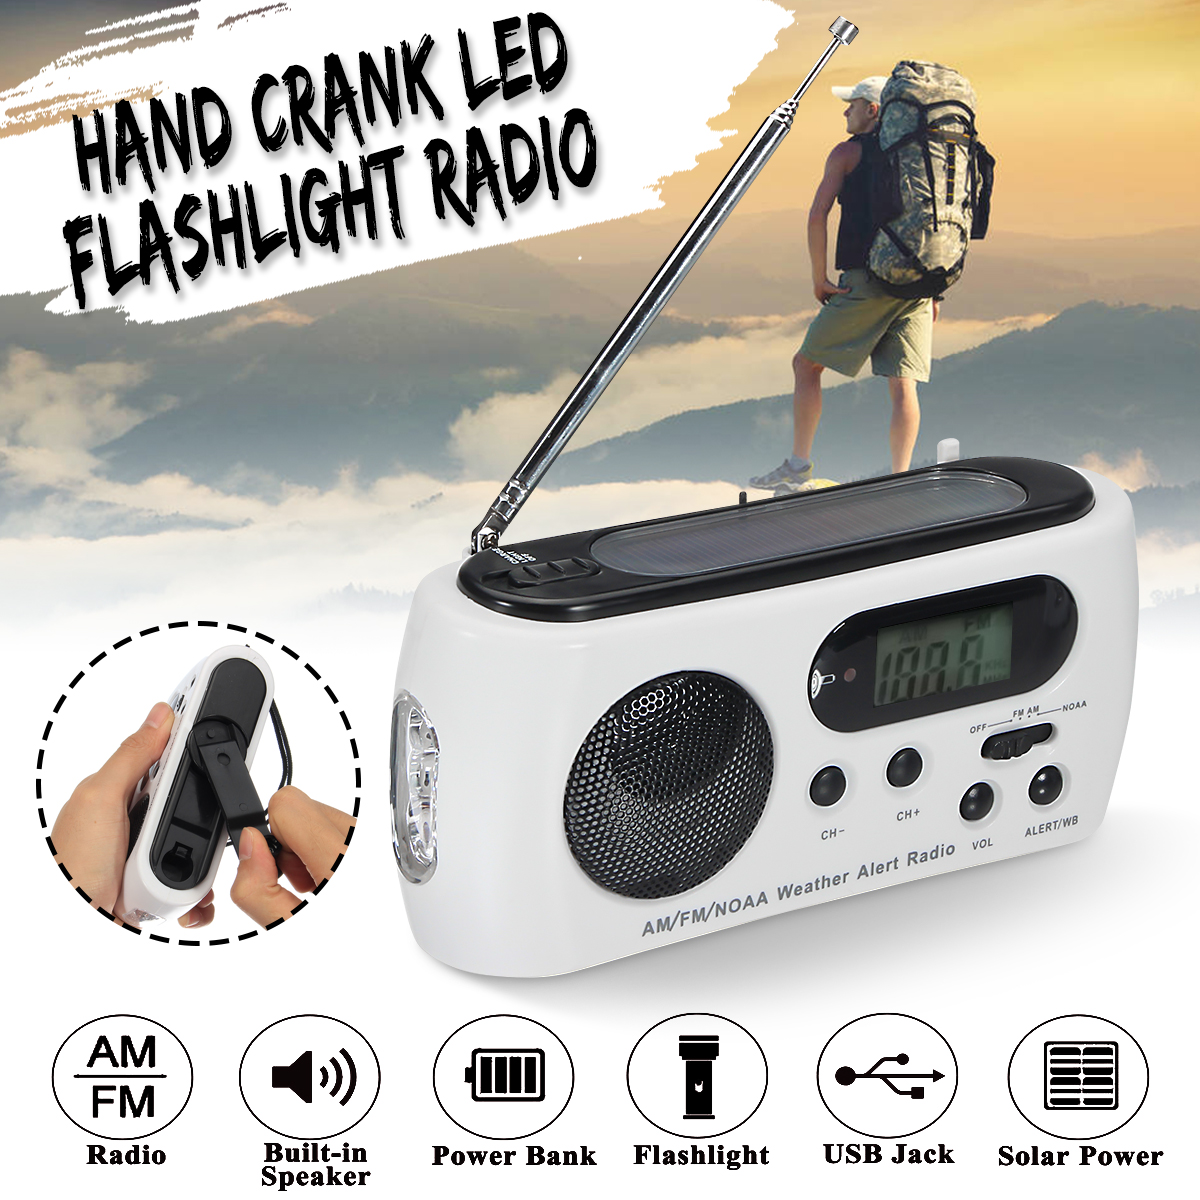 Portable Emergency Radio Solar Hand Crank LED Flashlight Torch Phone Charger AM FM NOAA Weather Radio Receiver Telescopic Antenna